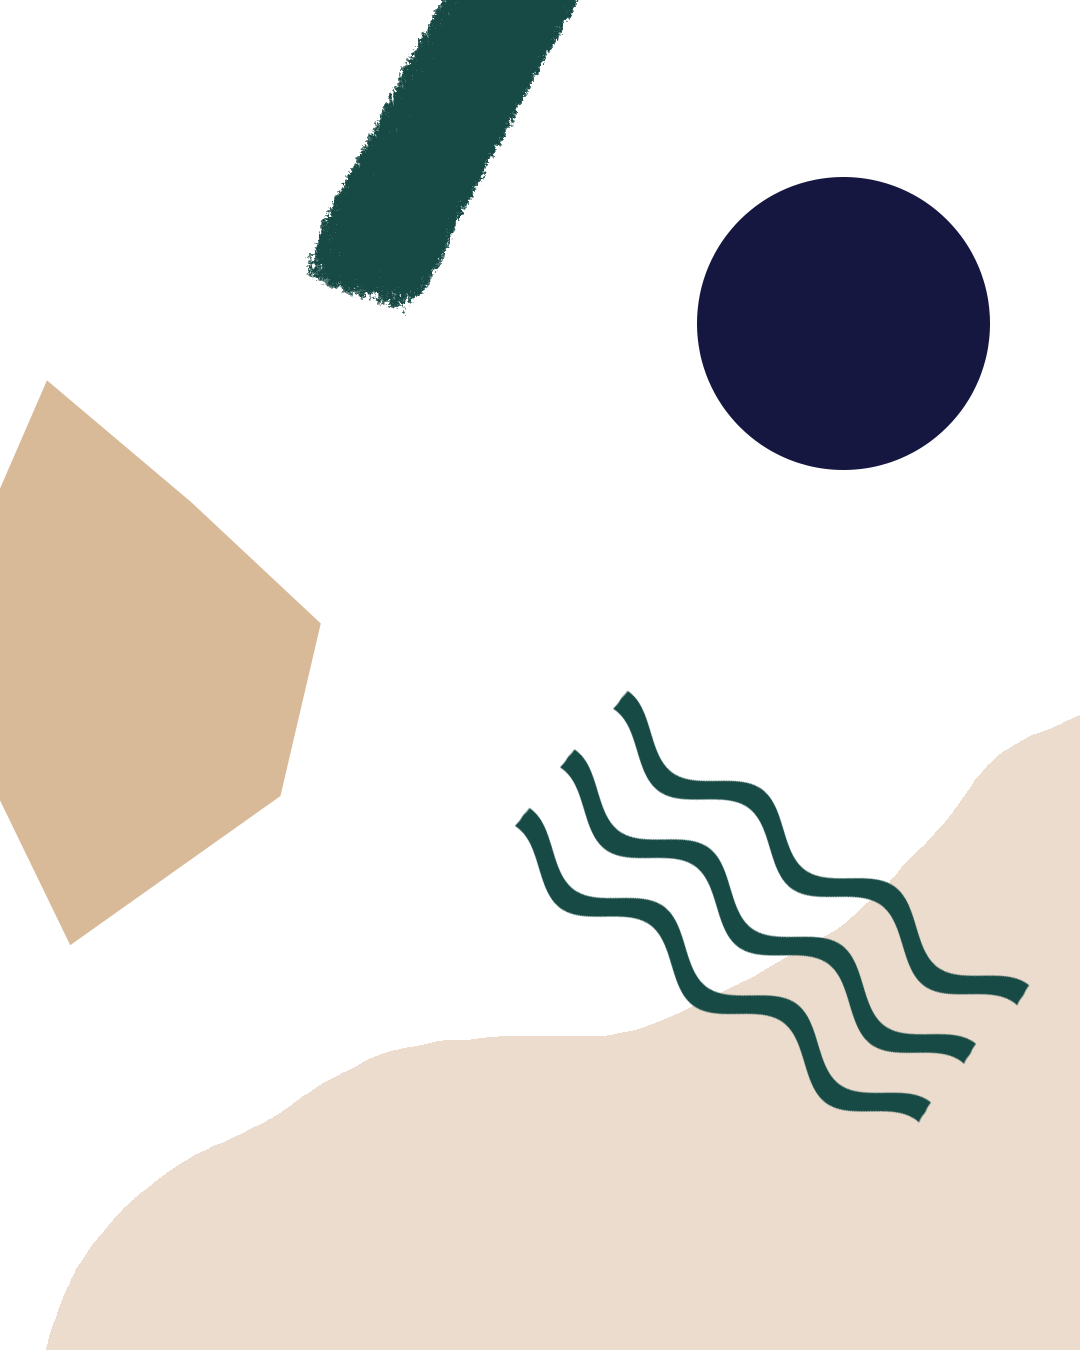 Abstract composition of shapes and wiggly lines in navy blue, beige and dark green on a white background